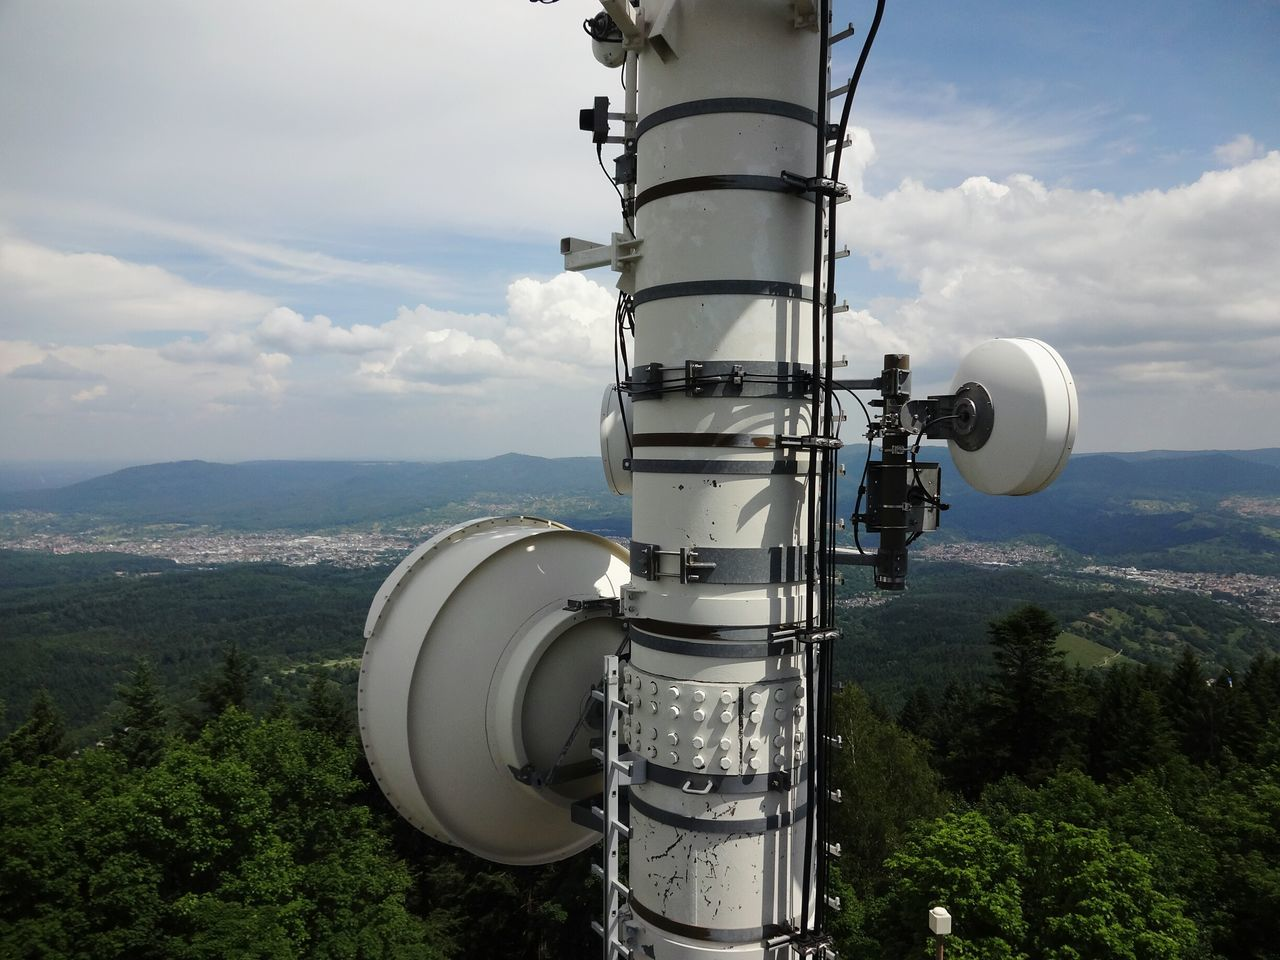 Technology Day Cloud - Sky No People Outdoors Nature Communication Communications Tower Merkur Landscape Landschaft Panorama Panorama View Black Forest Schwarzwald Thundery Antenna - Aerial Telecommunications Equipment Mobilfunkmast Mobilfunk Technology And Nature